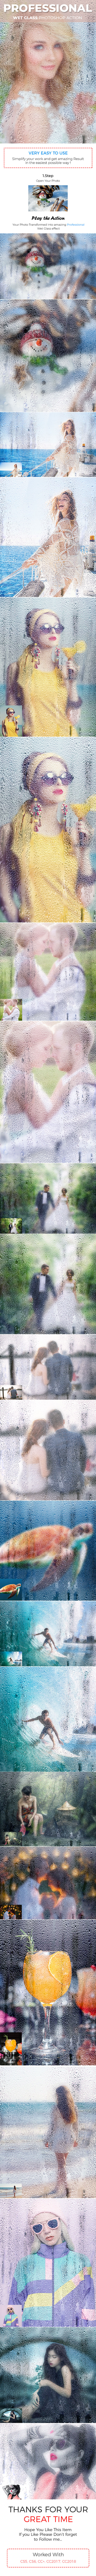 Professional Wet Glass Photoshop Action - Photo Effects Actions